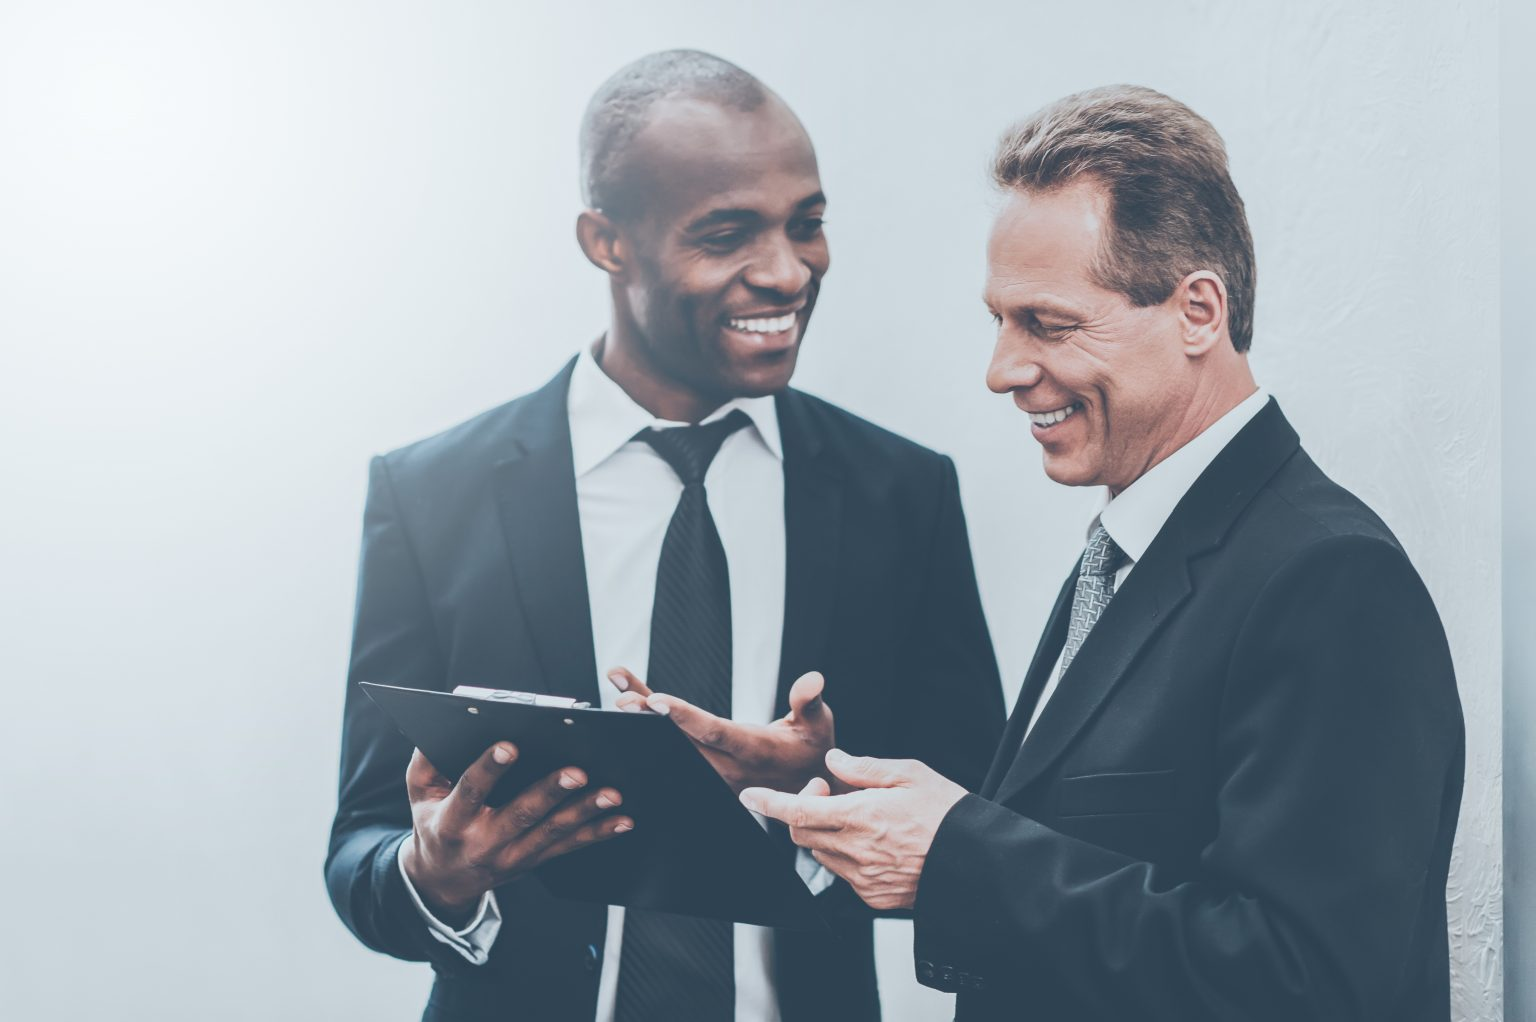 Smiling businessmen with a good relationship discussing and looking at a B2B sales report on a clipboard